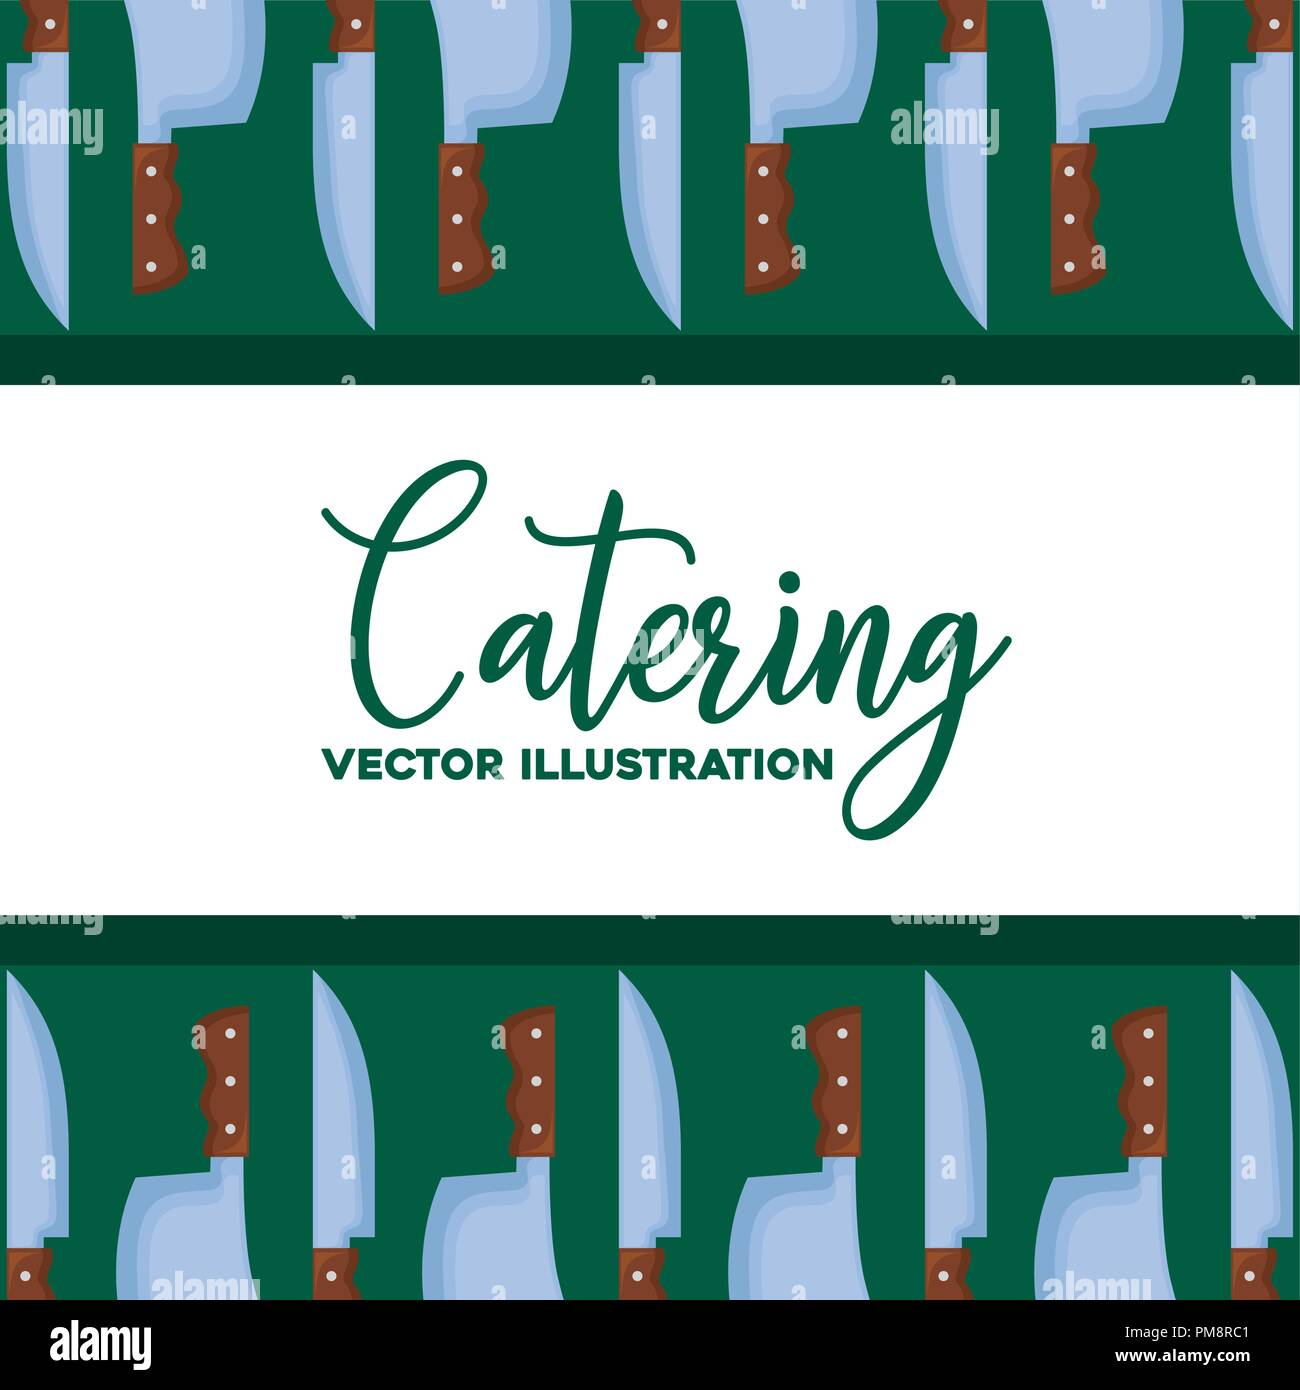 background of catering concept with knifes pattern, colorful design. vector illustration - Stock Image